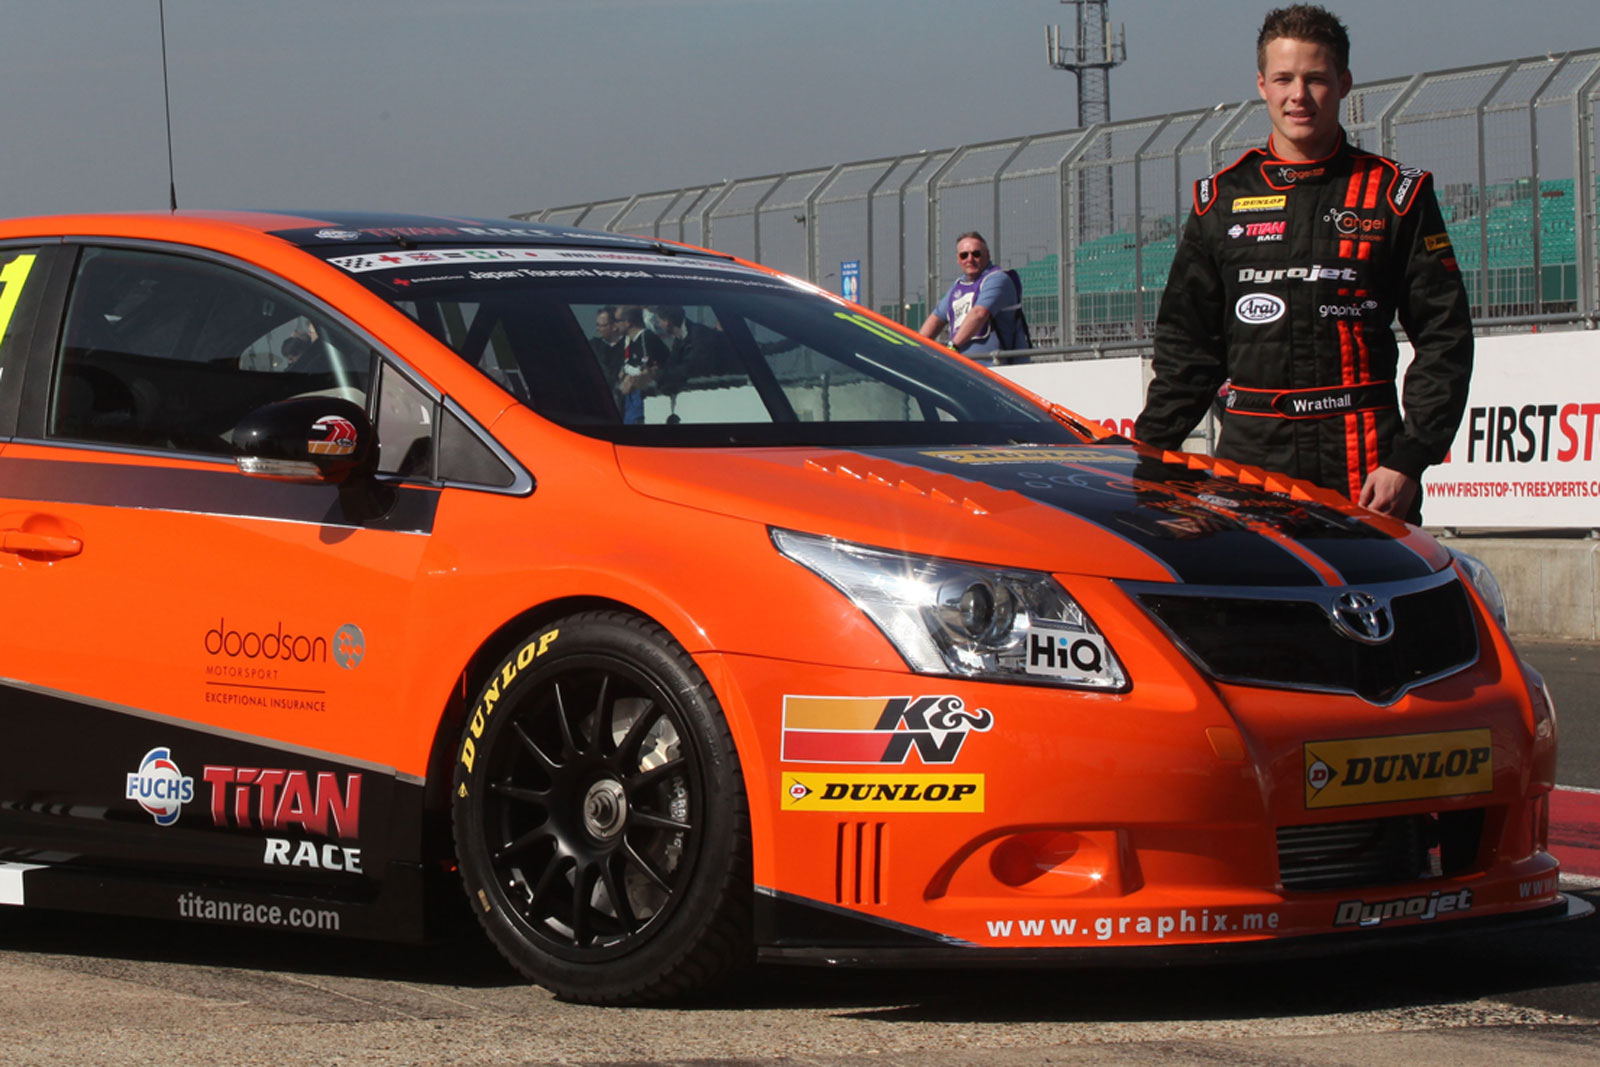 New 300HP Toyota Avensis BTCC Racer Revealed in the Flesh [with Video] | Carscoops